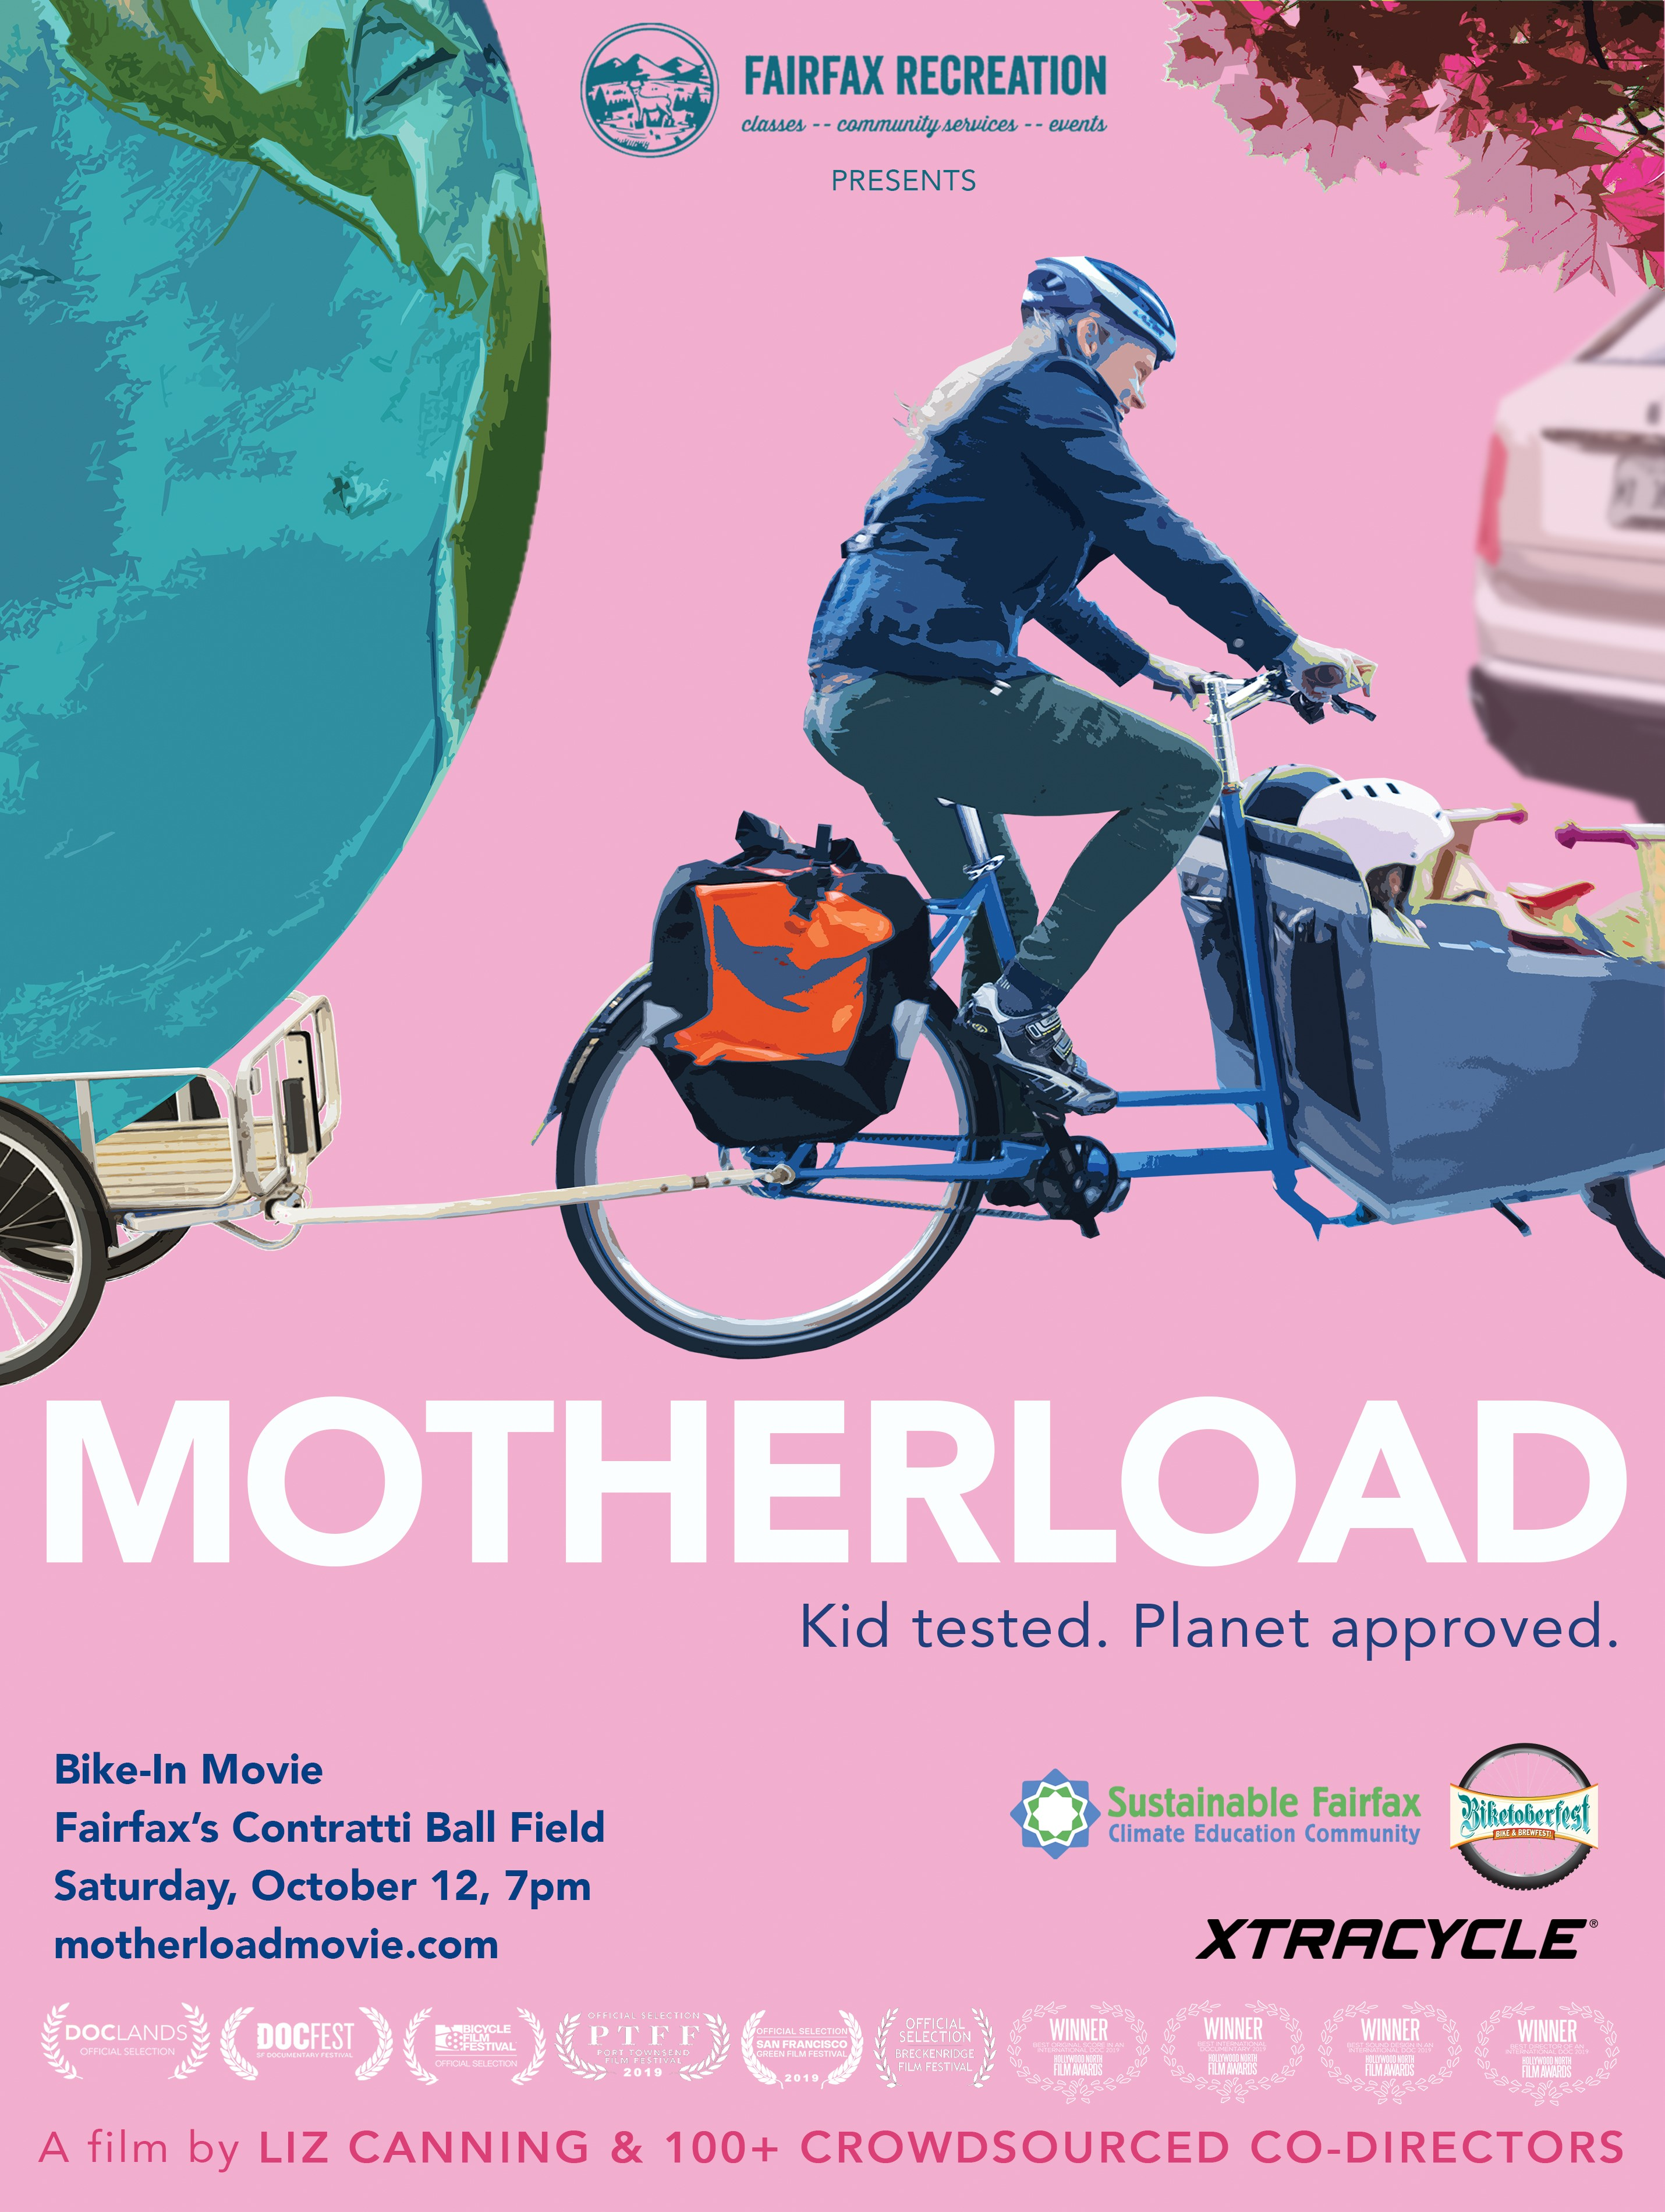 Revised Motherload poster